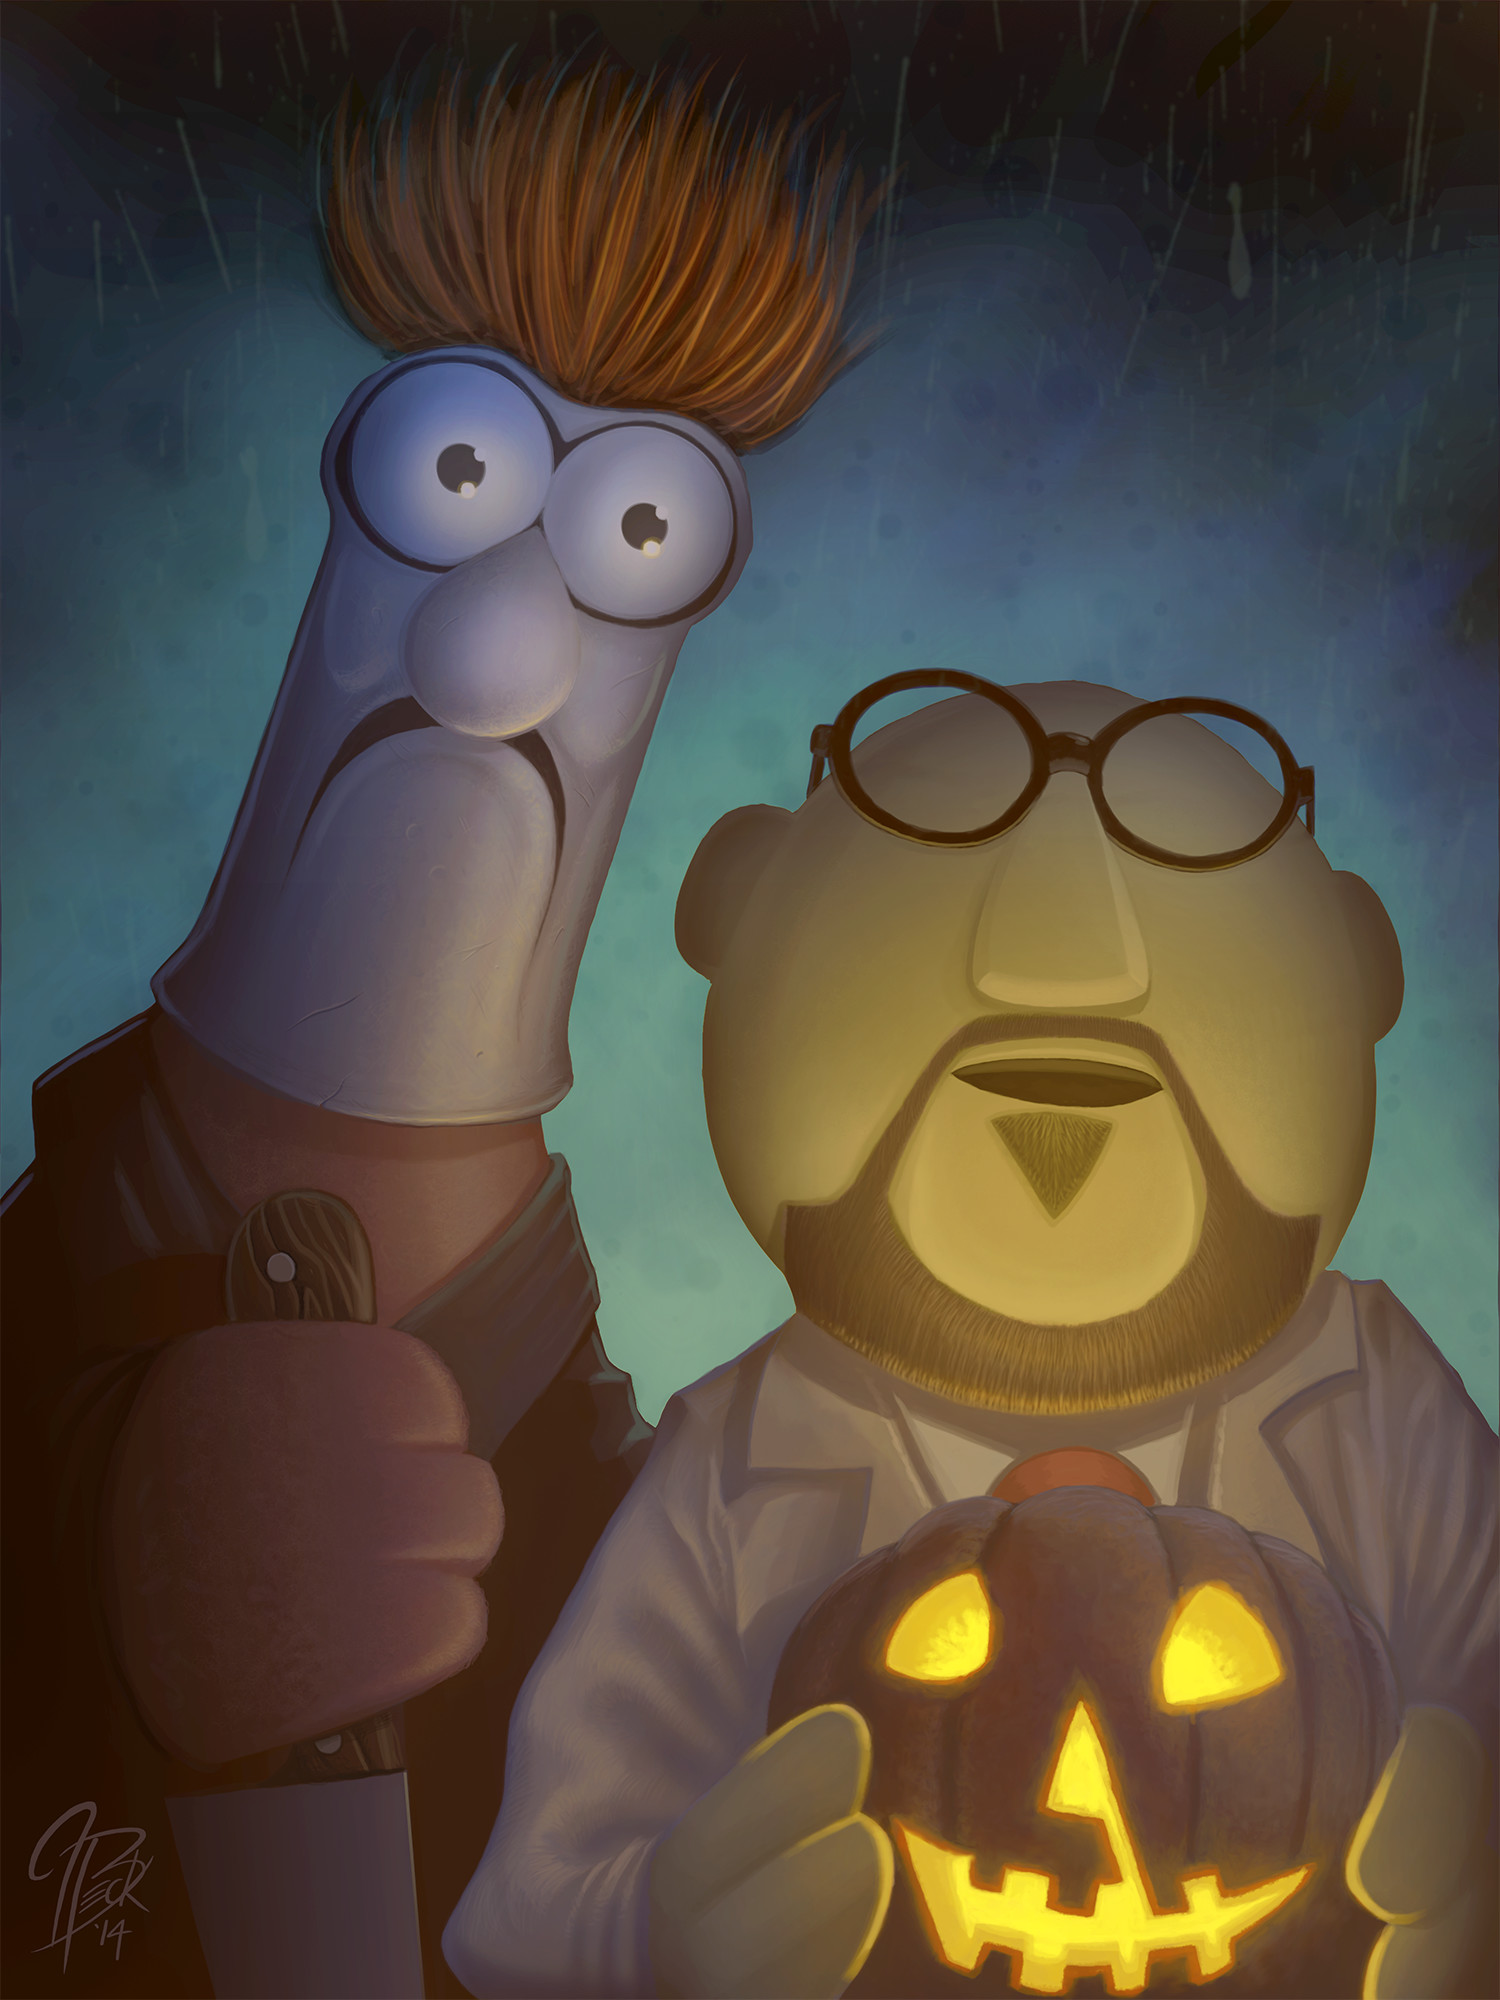 Beaker as Michael Myers; Dr. Bunson Honeydew as Dr. Loomis